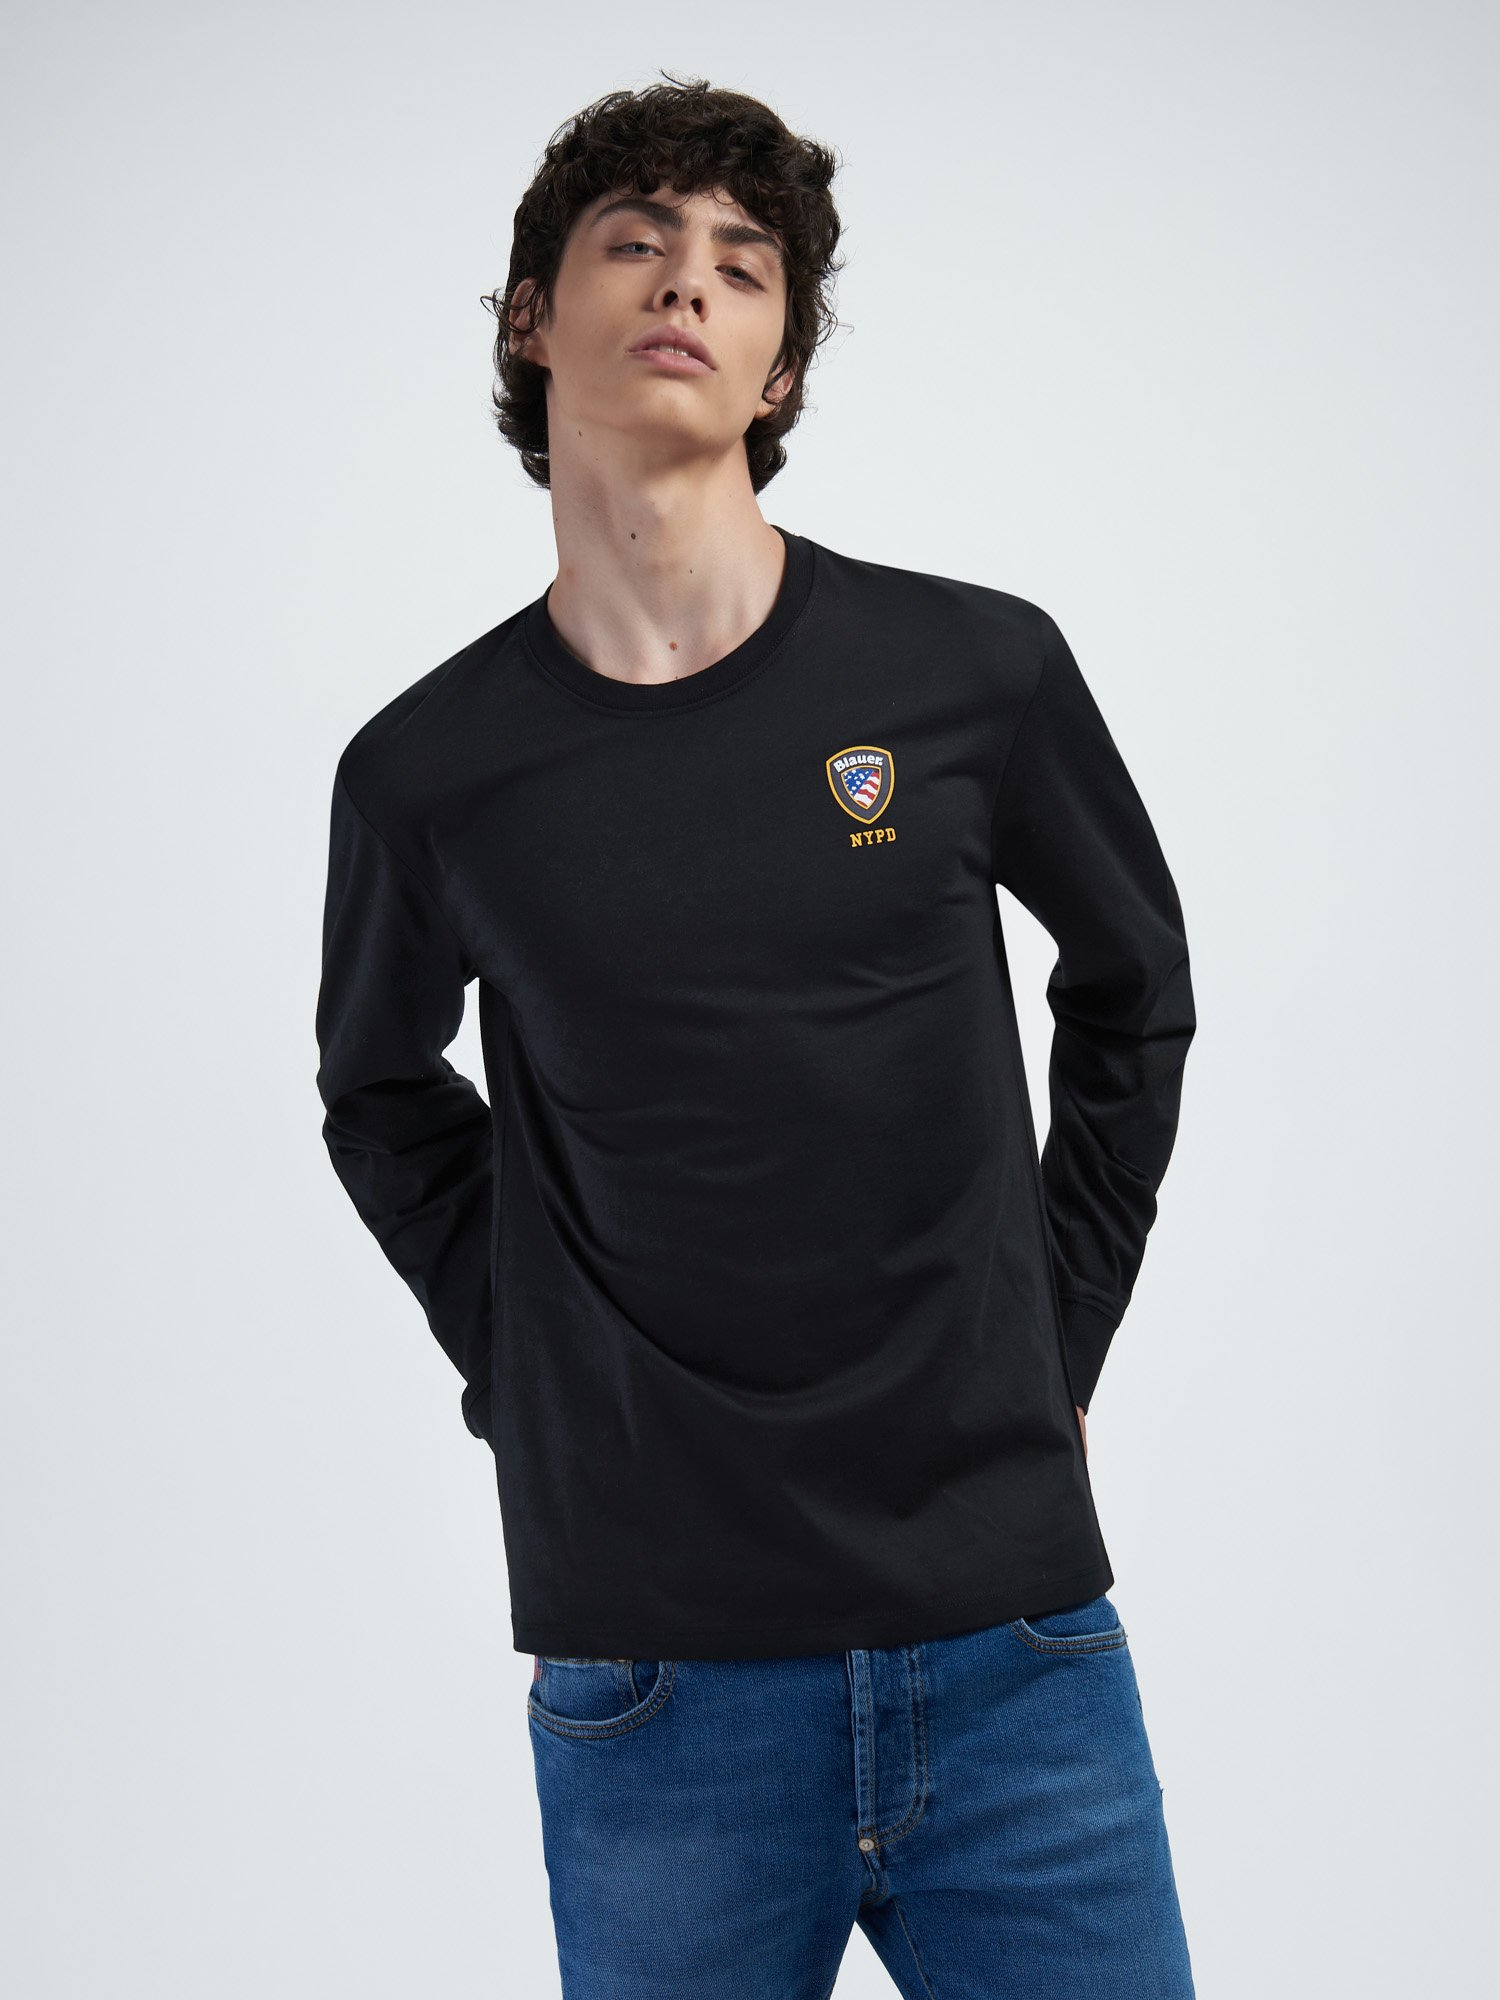 LONG SLEEVE T-SHIRT IN JERSEY - Blauer